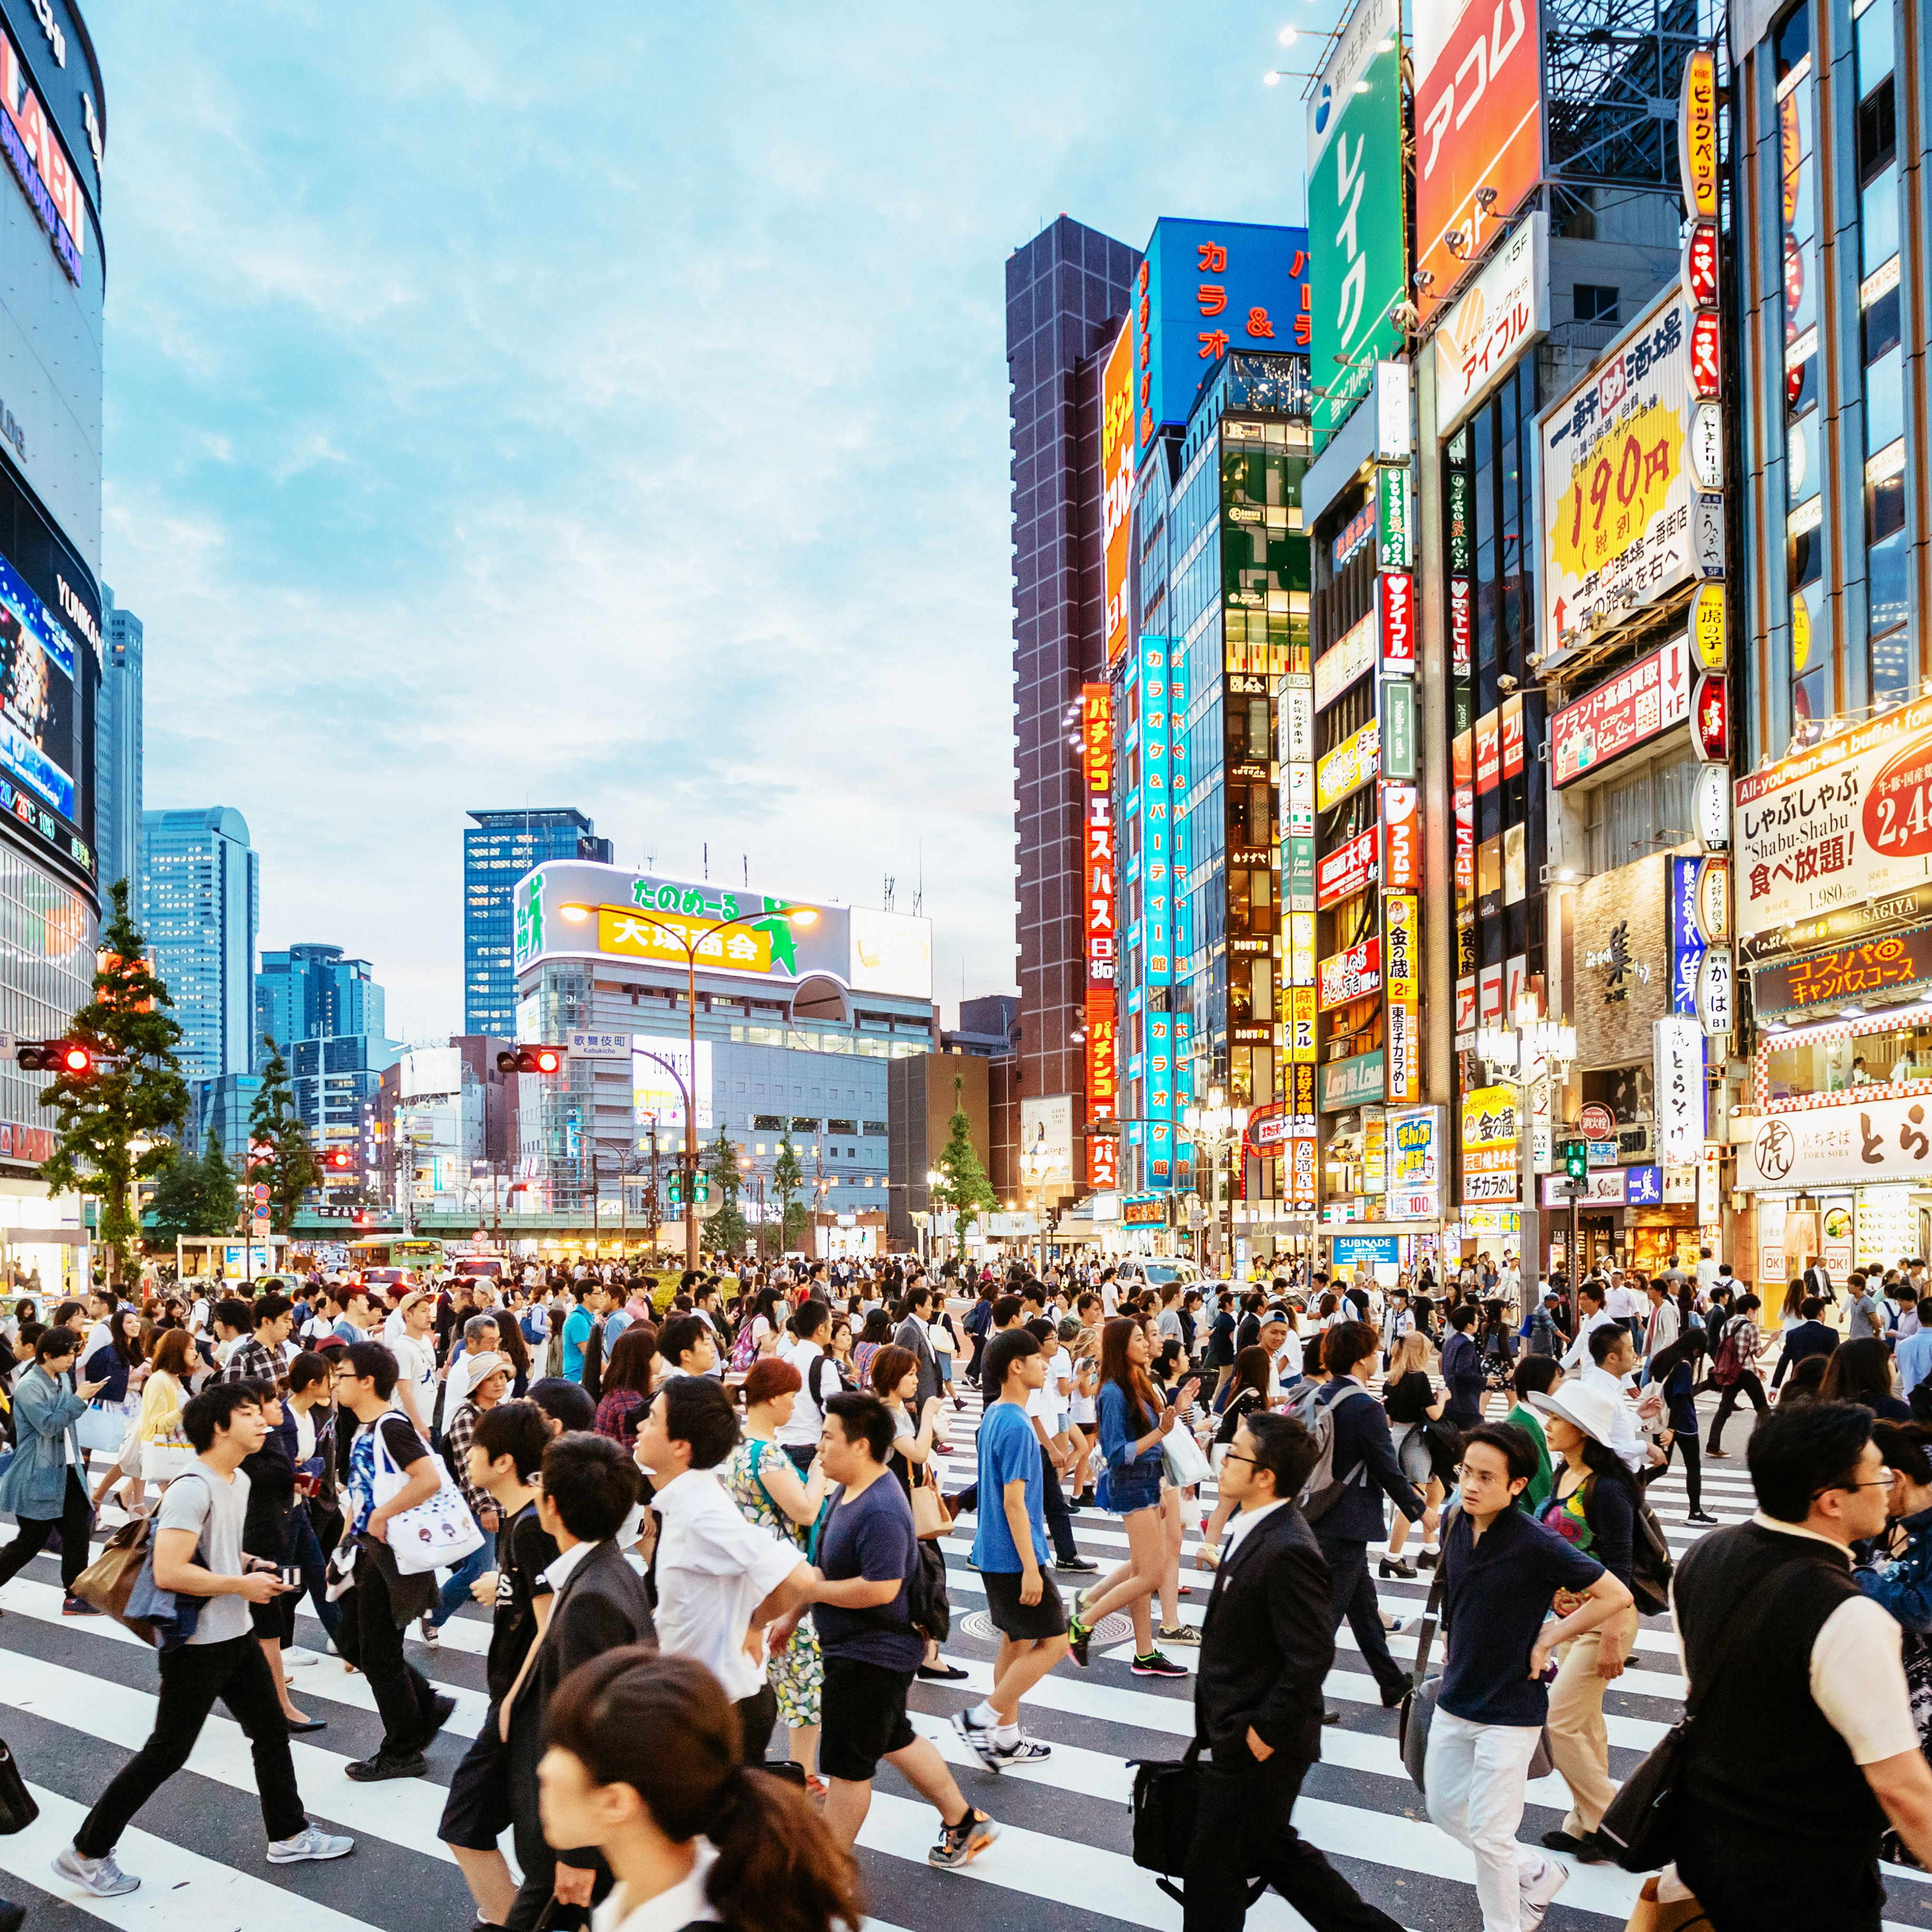 Golden Week in Japan: The Busiest Time to Be in Japan